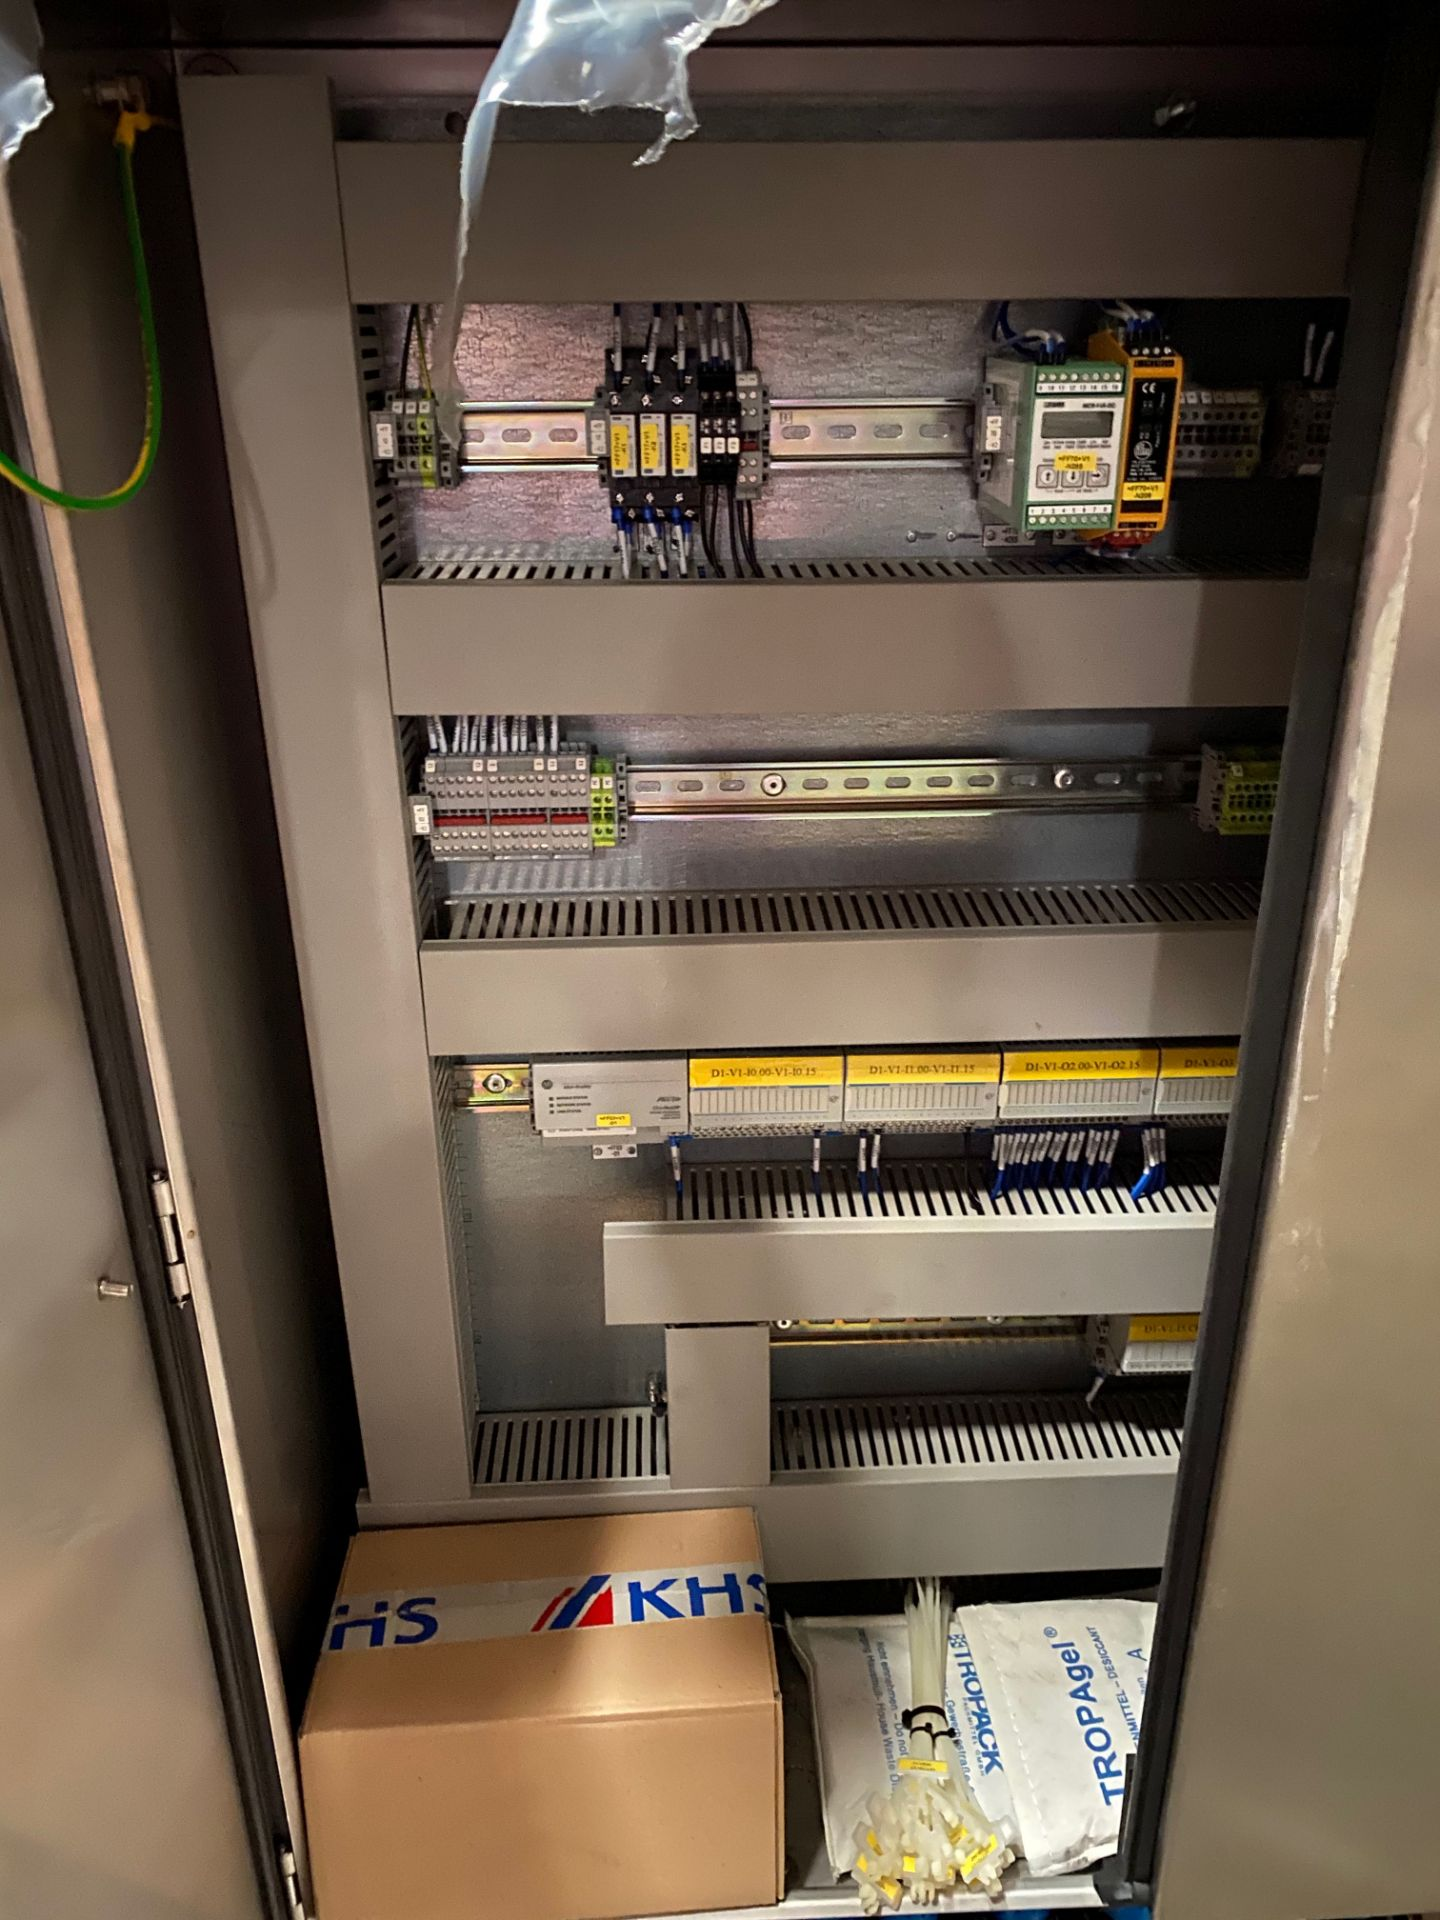 Lot 27B - KHS INNOCLEAN Manifold Control Panel, New Never Installed